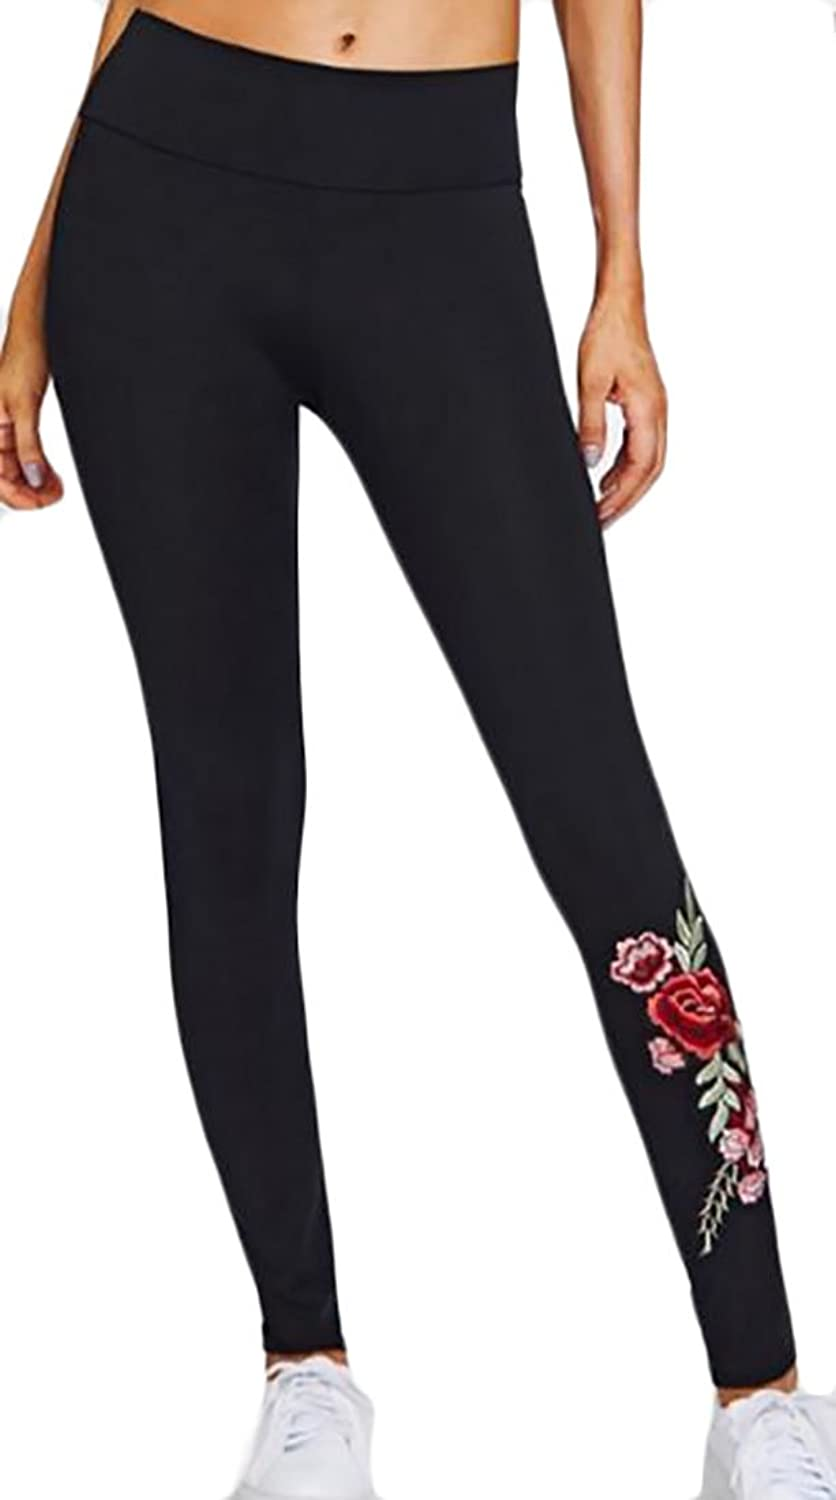 ARRIVE GUIDE Womens Embroidery Elastic High Waist Leggings Pants Outdoor